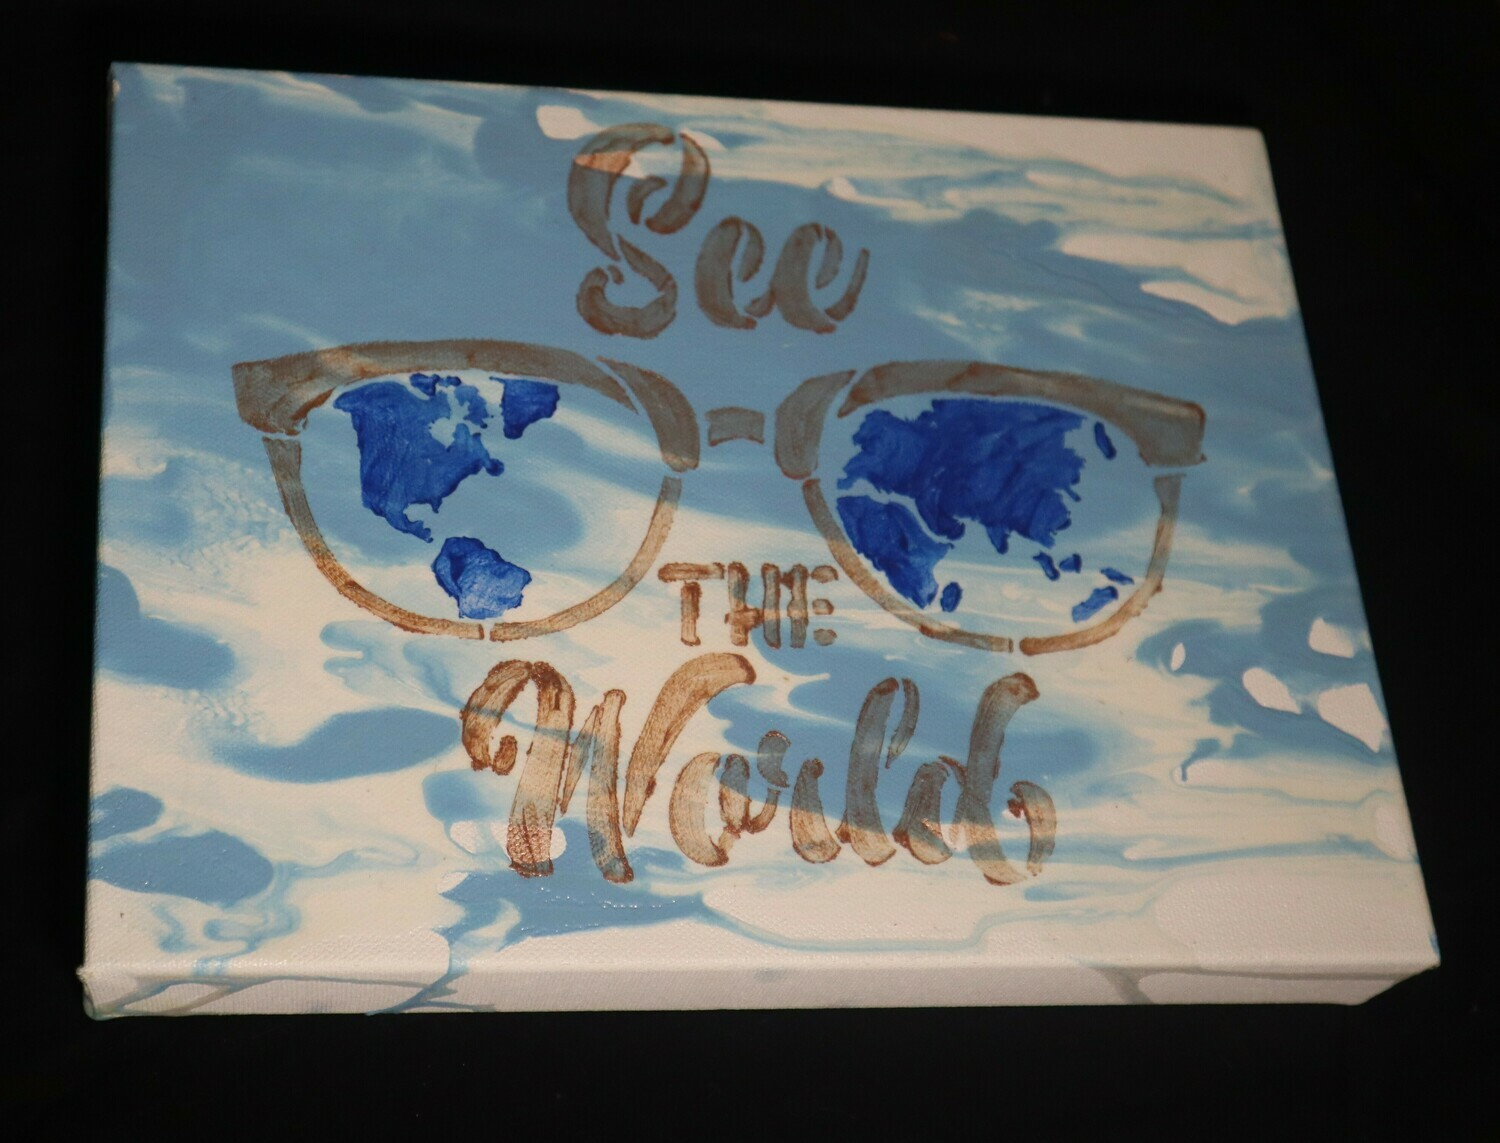 See The World Mable Background